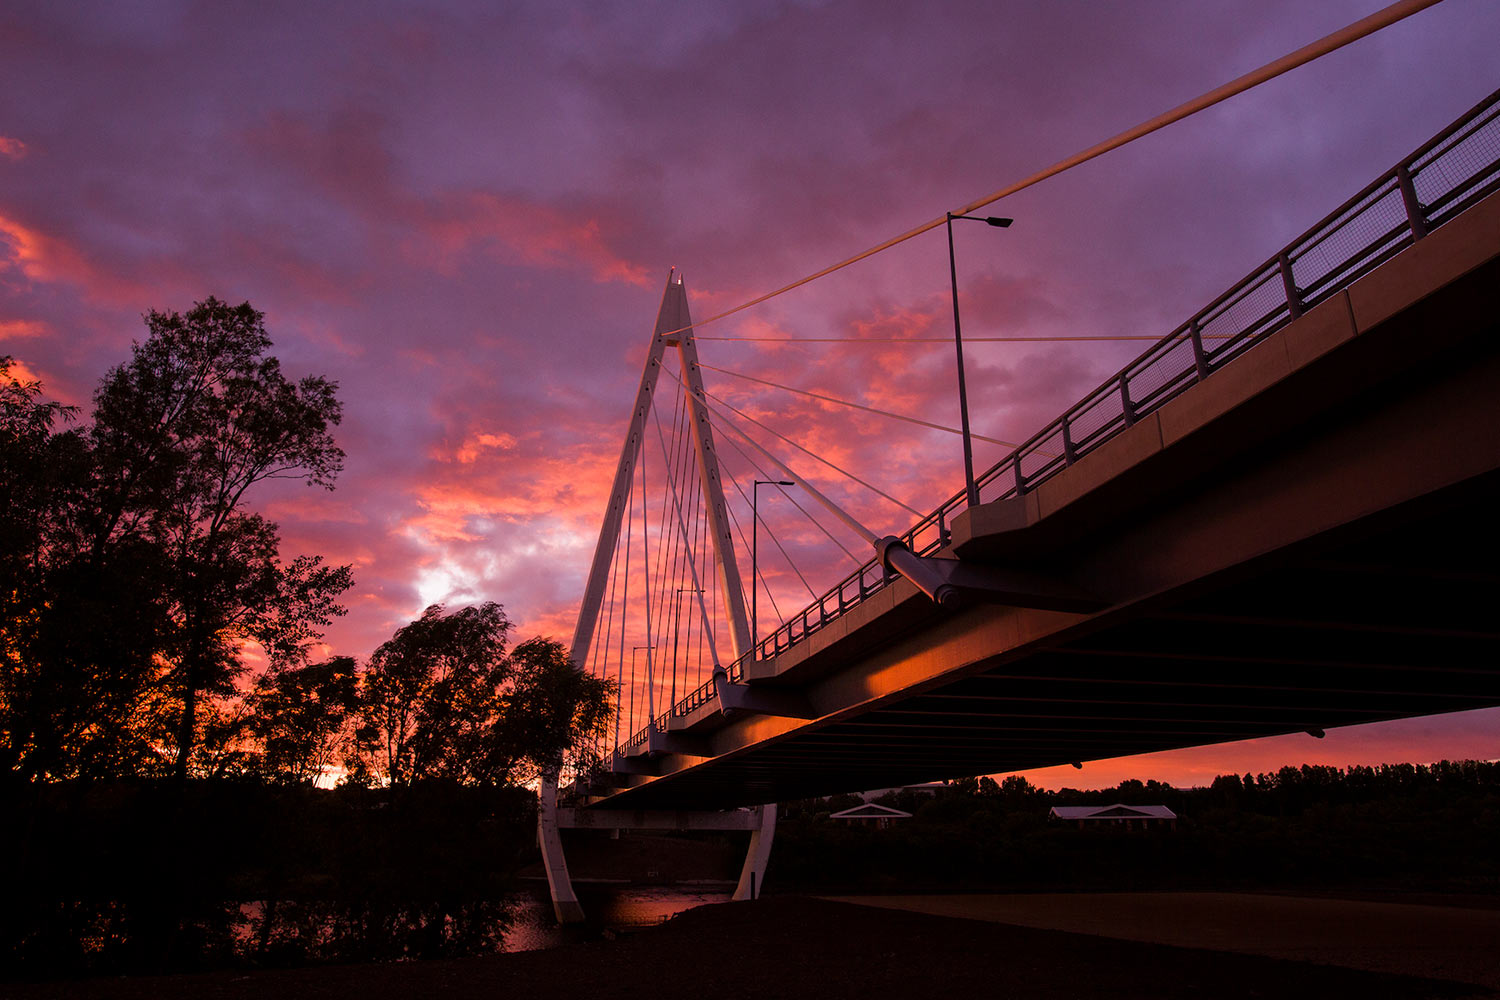 Northern Spire against a vibrant pink and red sunset